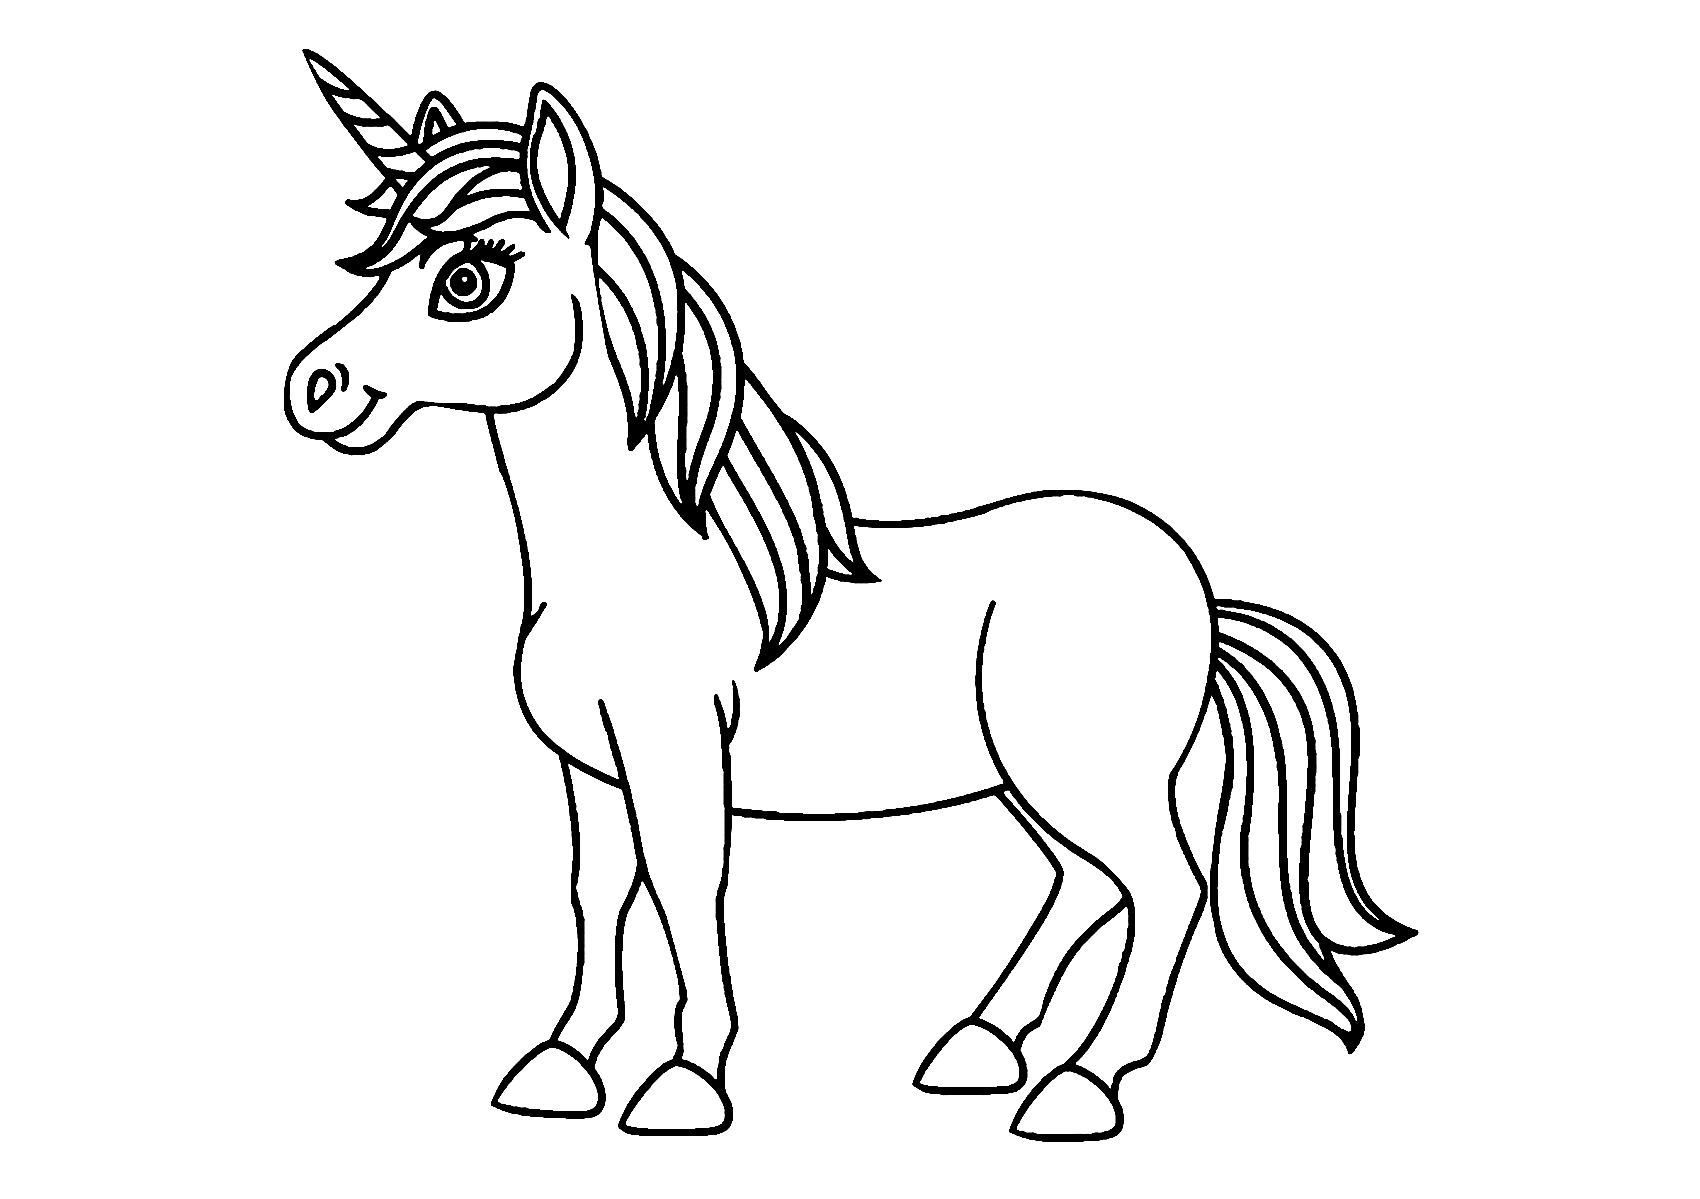 Easy Preschool Unicorn Coloring Page for Kids